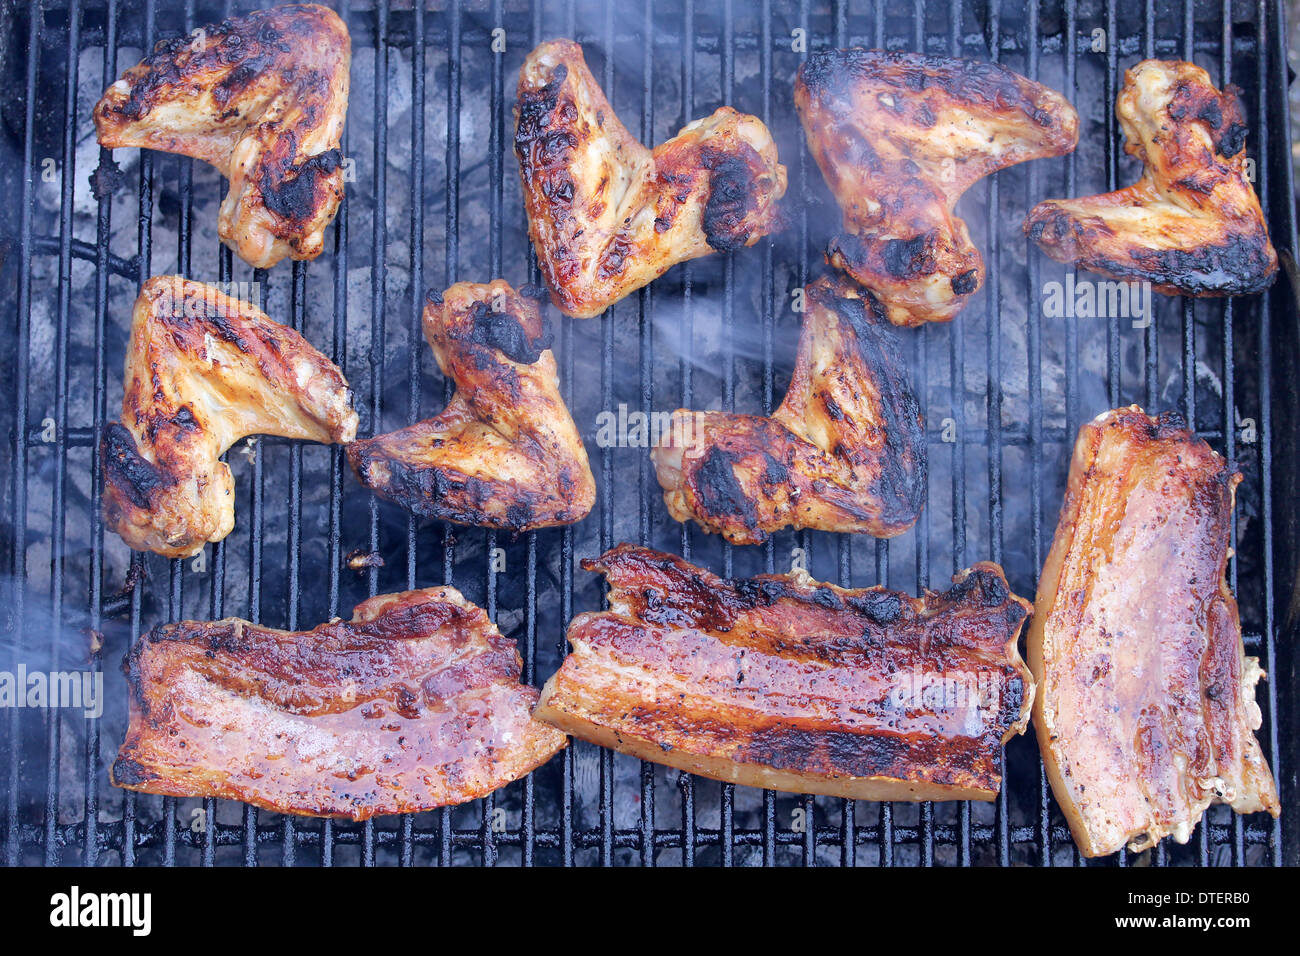 Chicken wings and bacon on the barbecue. - Stock Image